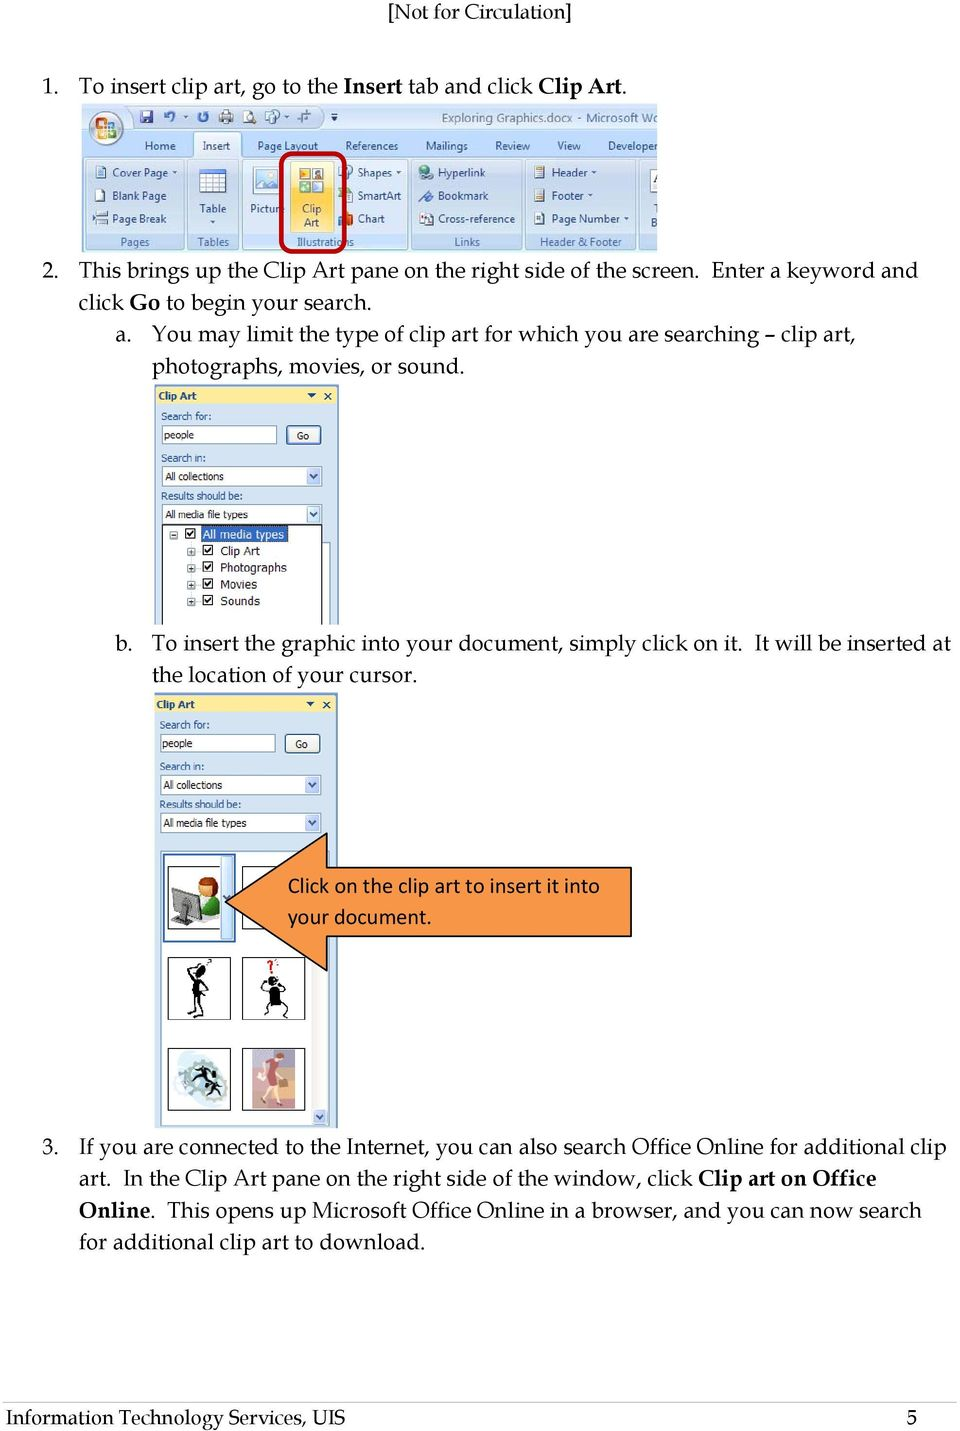 If you are connected to the Internet, you can also search Office Online for additional clip art. In the Clip Art pane on the right side of the window, click Clip art on Office Online.